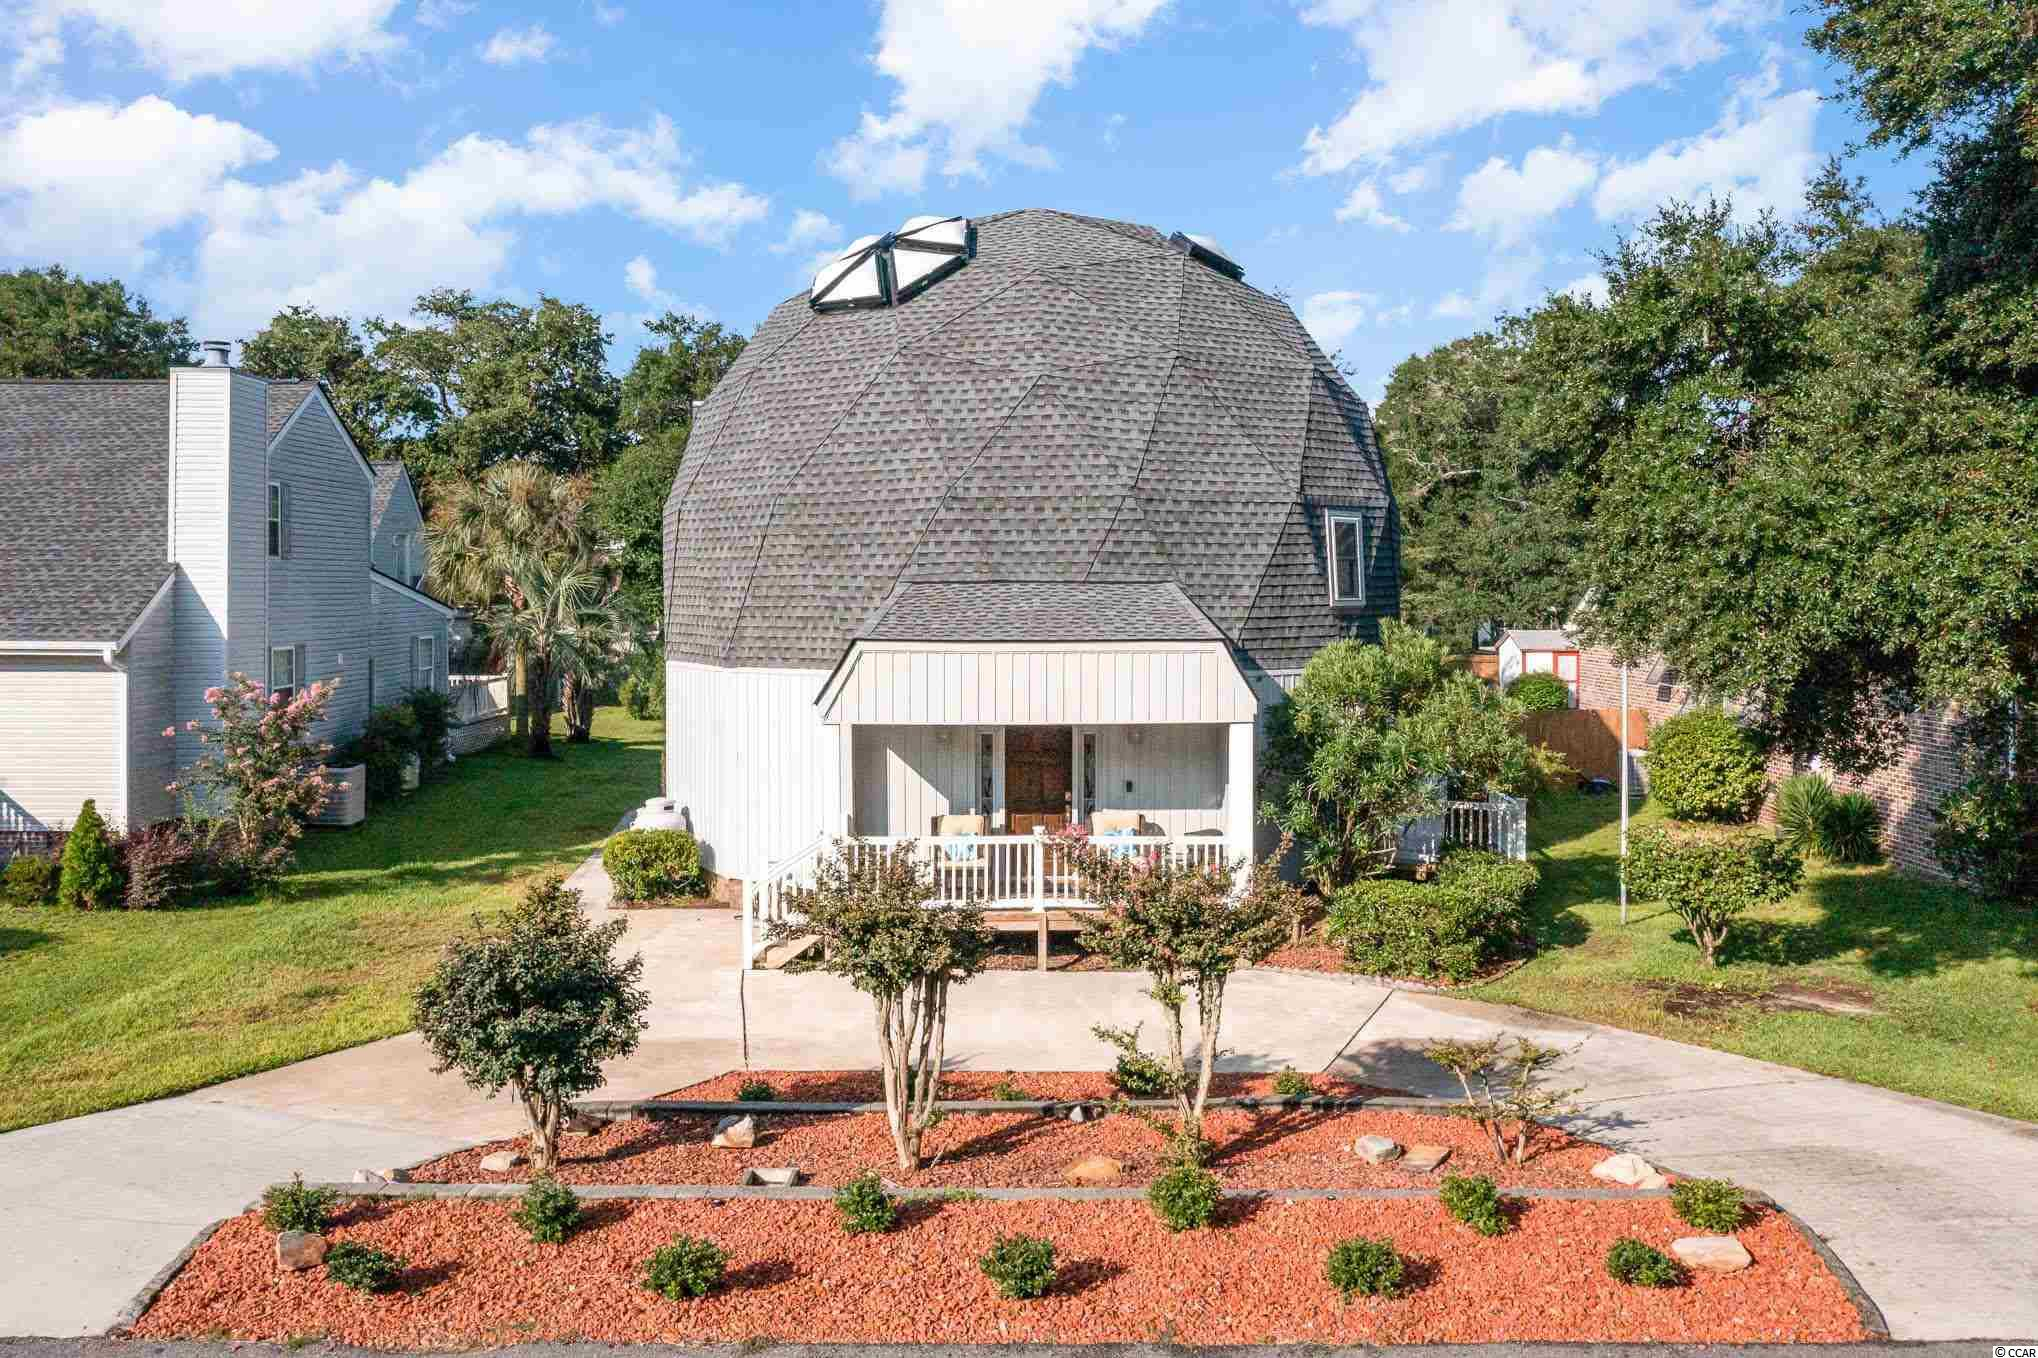 Here's an opportunity to own this unique, geodesic dome home just a few blocks from the beach! The home has a perfect layout, and the unique structure grants it a spacious, airy feel. Aside from the aesthetic attributes of the geodesic dome, it also is 30% more efficient over a conventional home of a similar size. Construction also withstands all kinds of inclement weather- be it hurricanes, earthquakes or tornados As you enter, you're greeted by high ceilings. The living room is equipped with a fireplace, perfect to gather round with friends and family. Continue onto the dining area and kitchen. The kitchen boasts granite counters, backsplash, a large pantry, and all the appliances you could need. Towards the back of the home, a spacious utility room where your washer and dryer are located. Also, a full bathroom and main level room that currently serves as a home office, but could also serve as a bedroom. On the second floor, you have the spacious primary bedroom complete with dual closets as well as an additional bedroom. On the top floor, you a skylight greets you on the landing, where you can appreciate the beauty of the dome. Two additional bedrooms each with dedicated closets are also located on this top floor. With hardwood floors throughout the common areas and stairs, this home is turnkey and ready for you to make it your own. Out back, a large deck complete with a hot tub is the perfect place to entertain, or relax after a long day. Come take a look today!